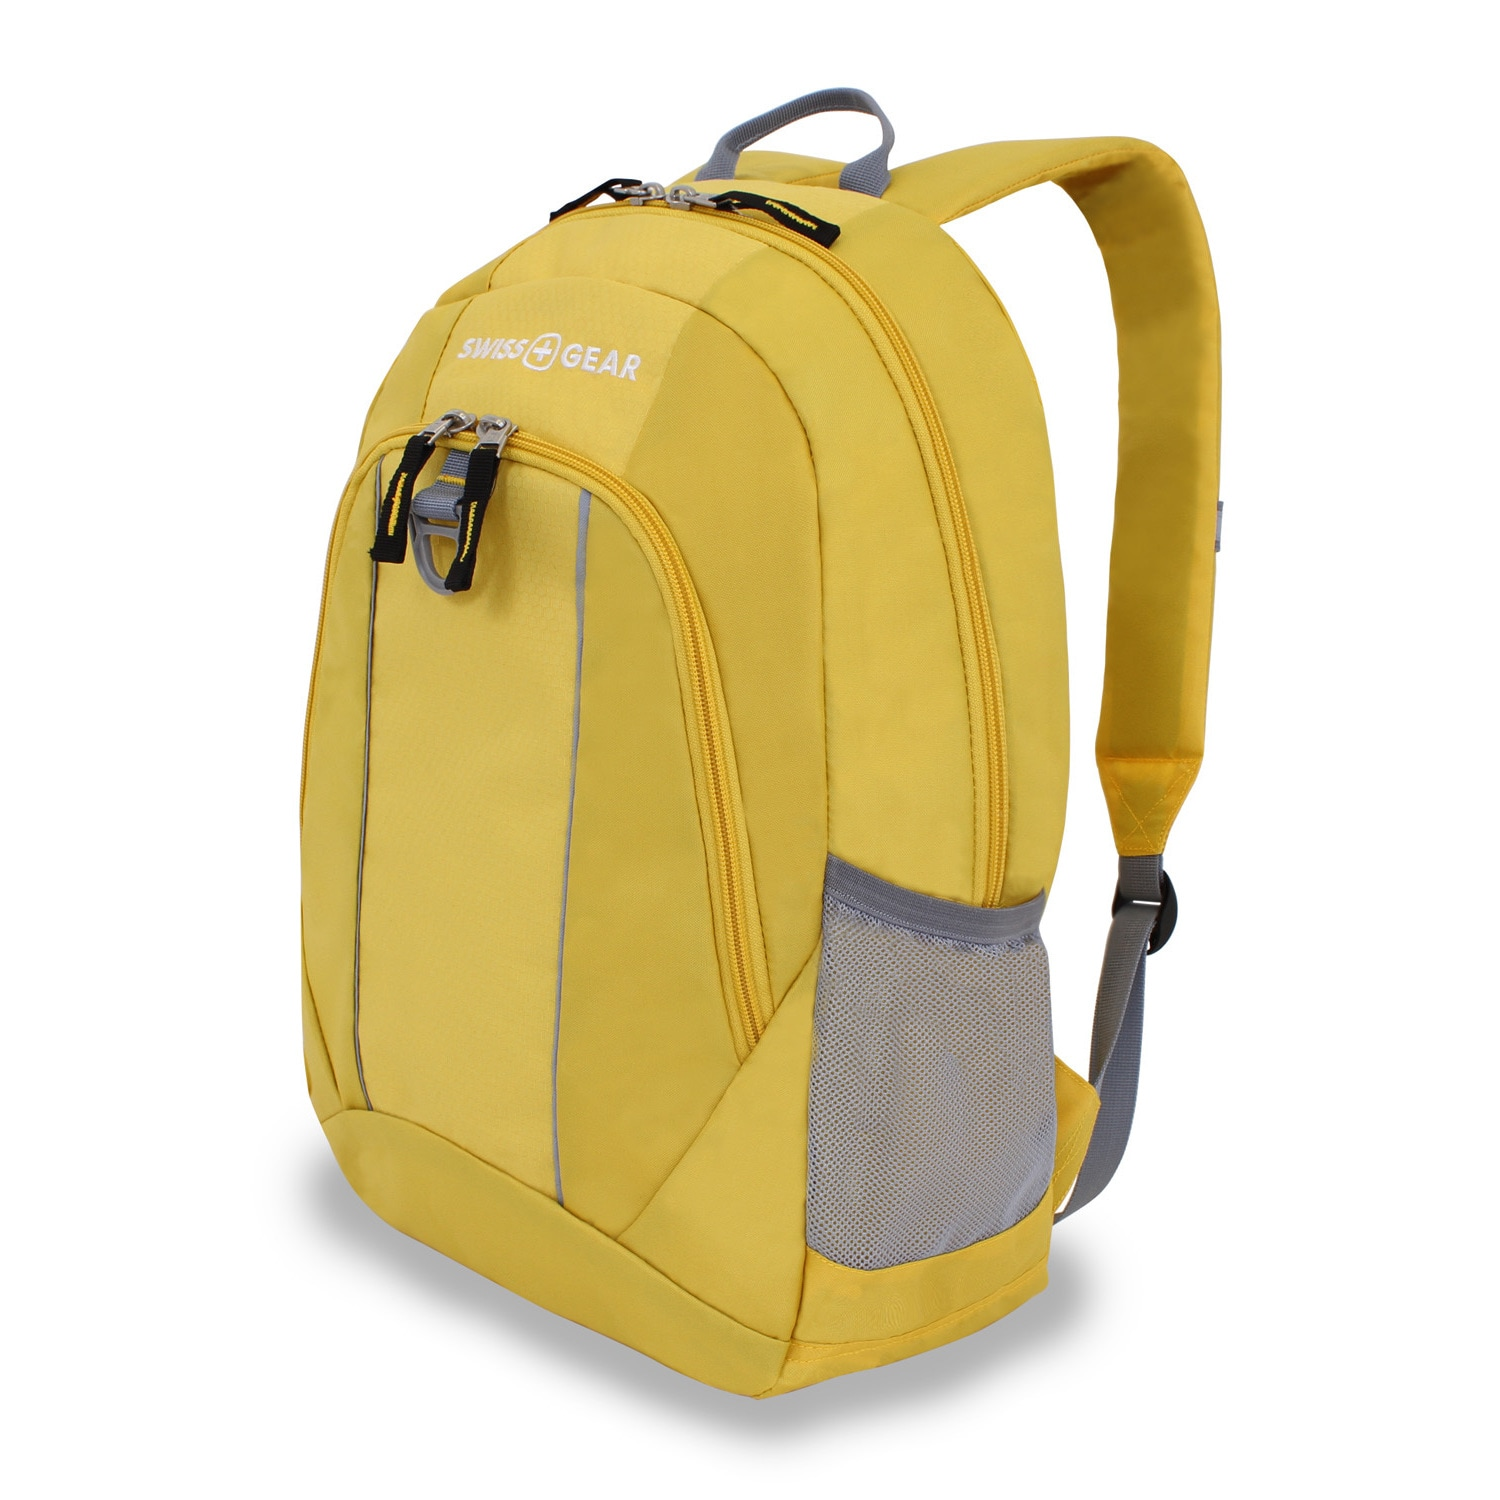 Swiss Gear Yellow 17-inch Tablet Backpack (Yellow)